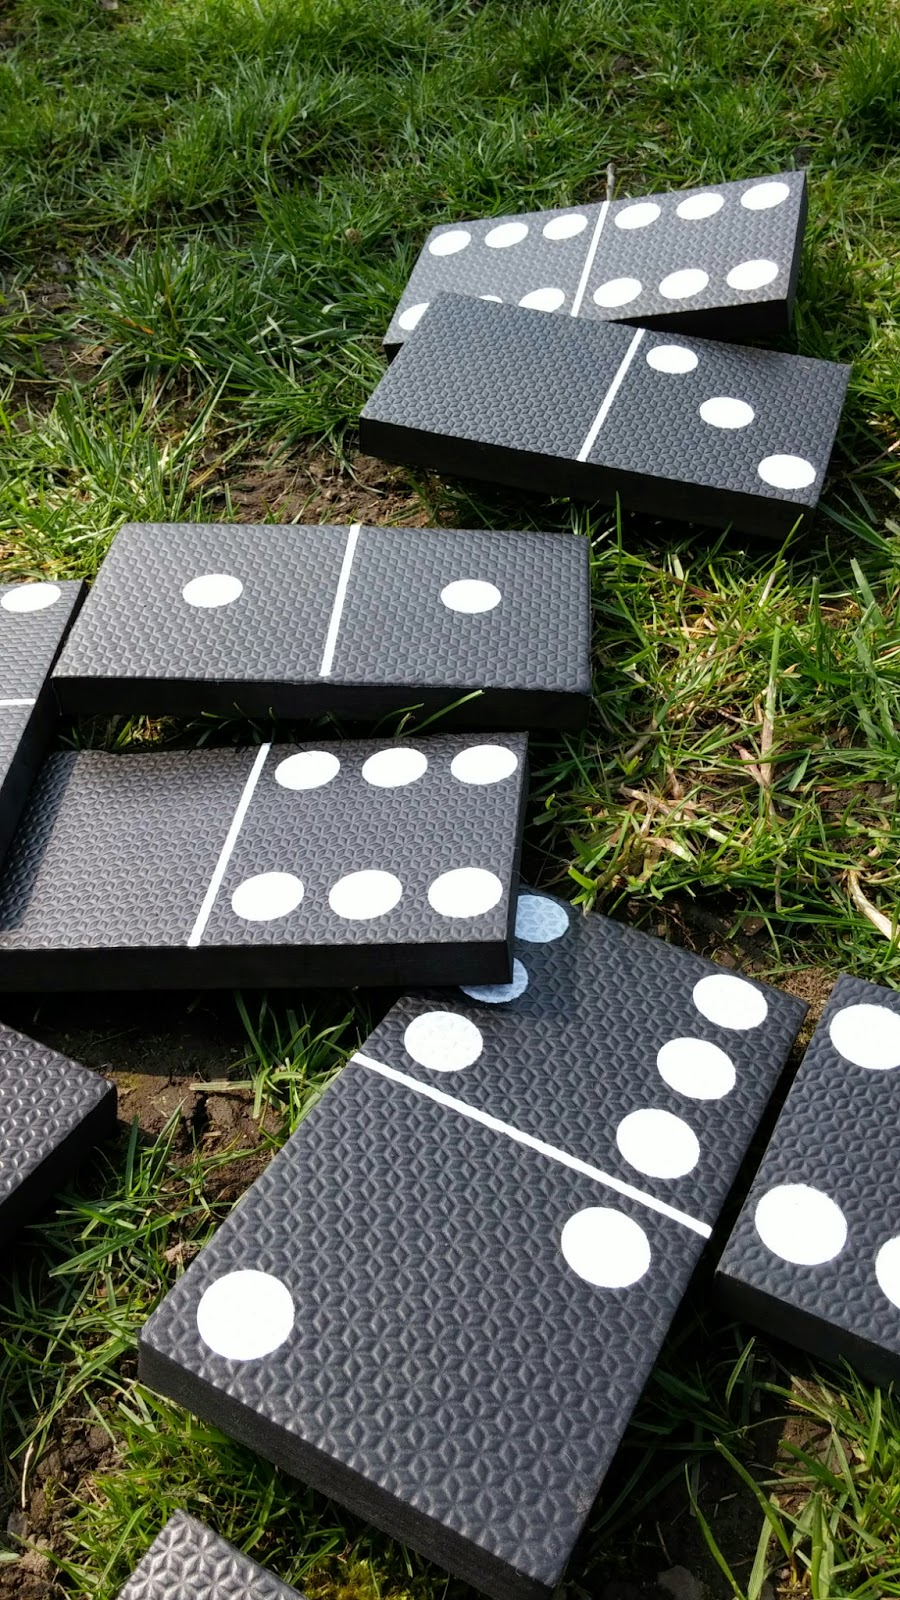 Playing dominoes in the garden